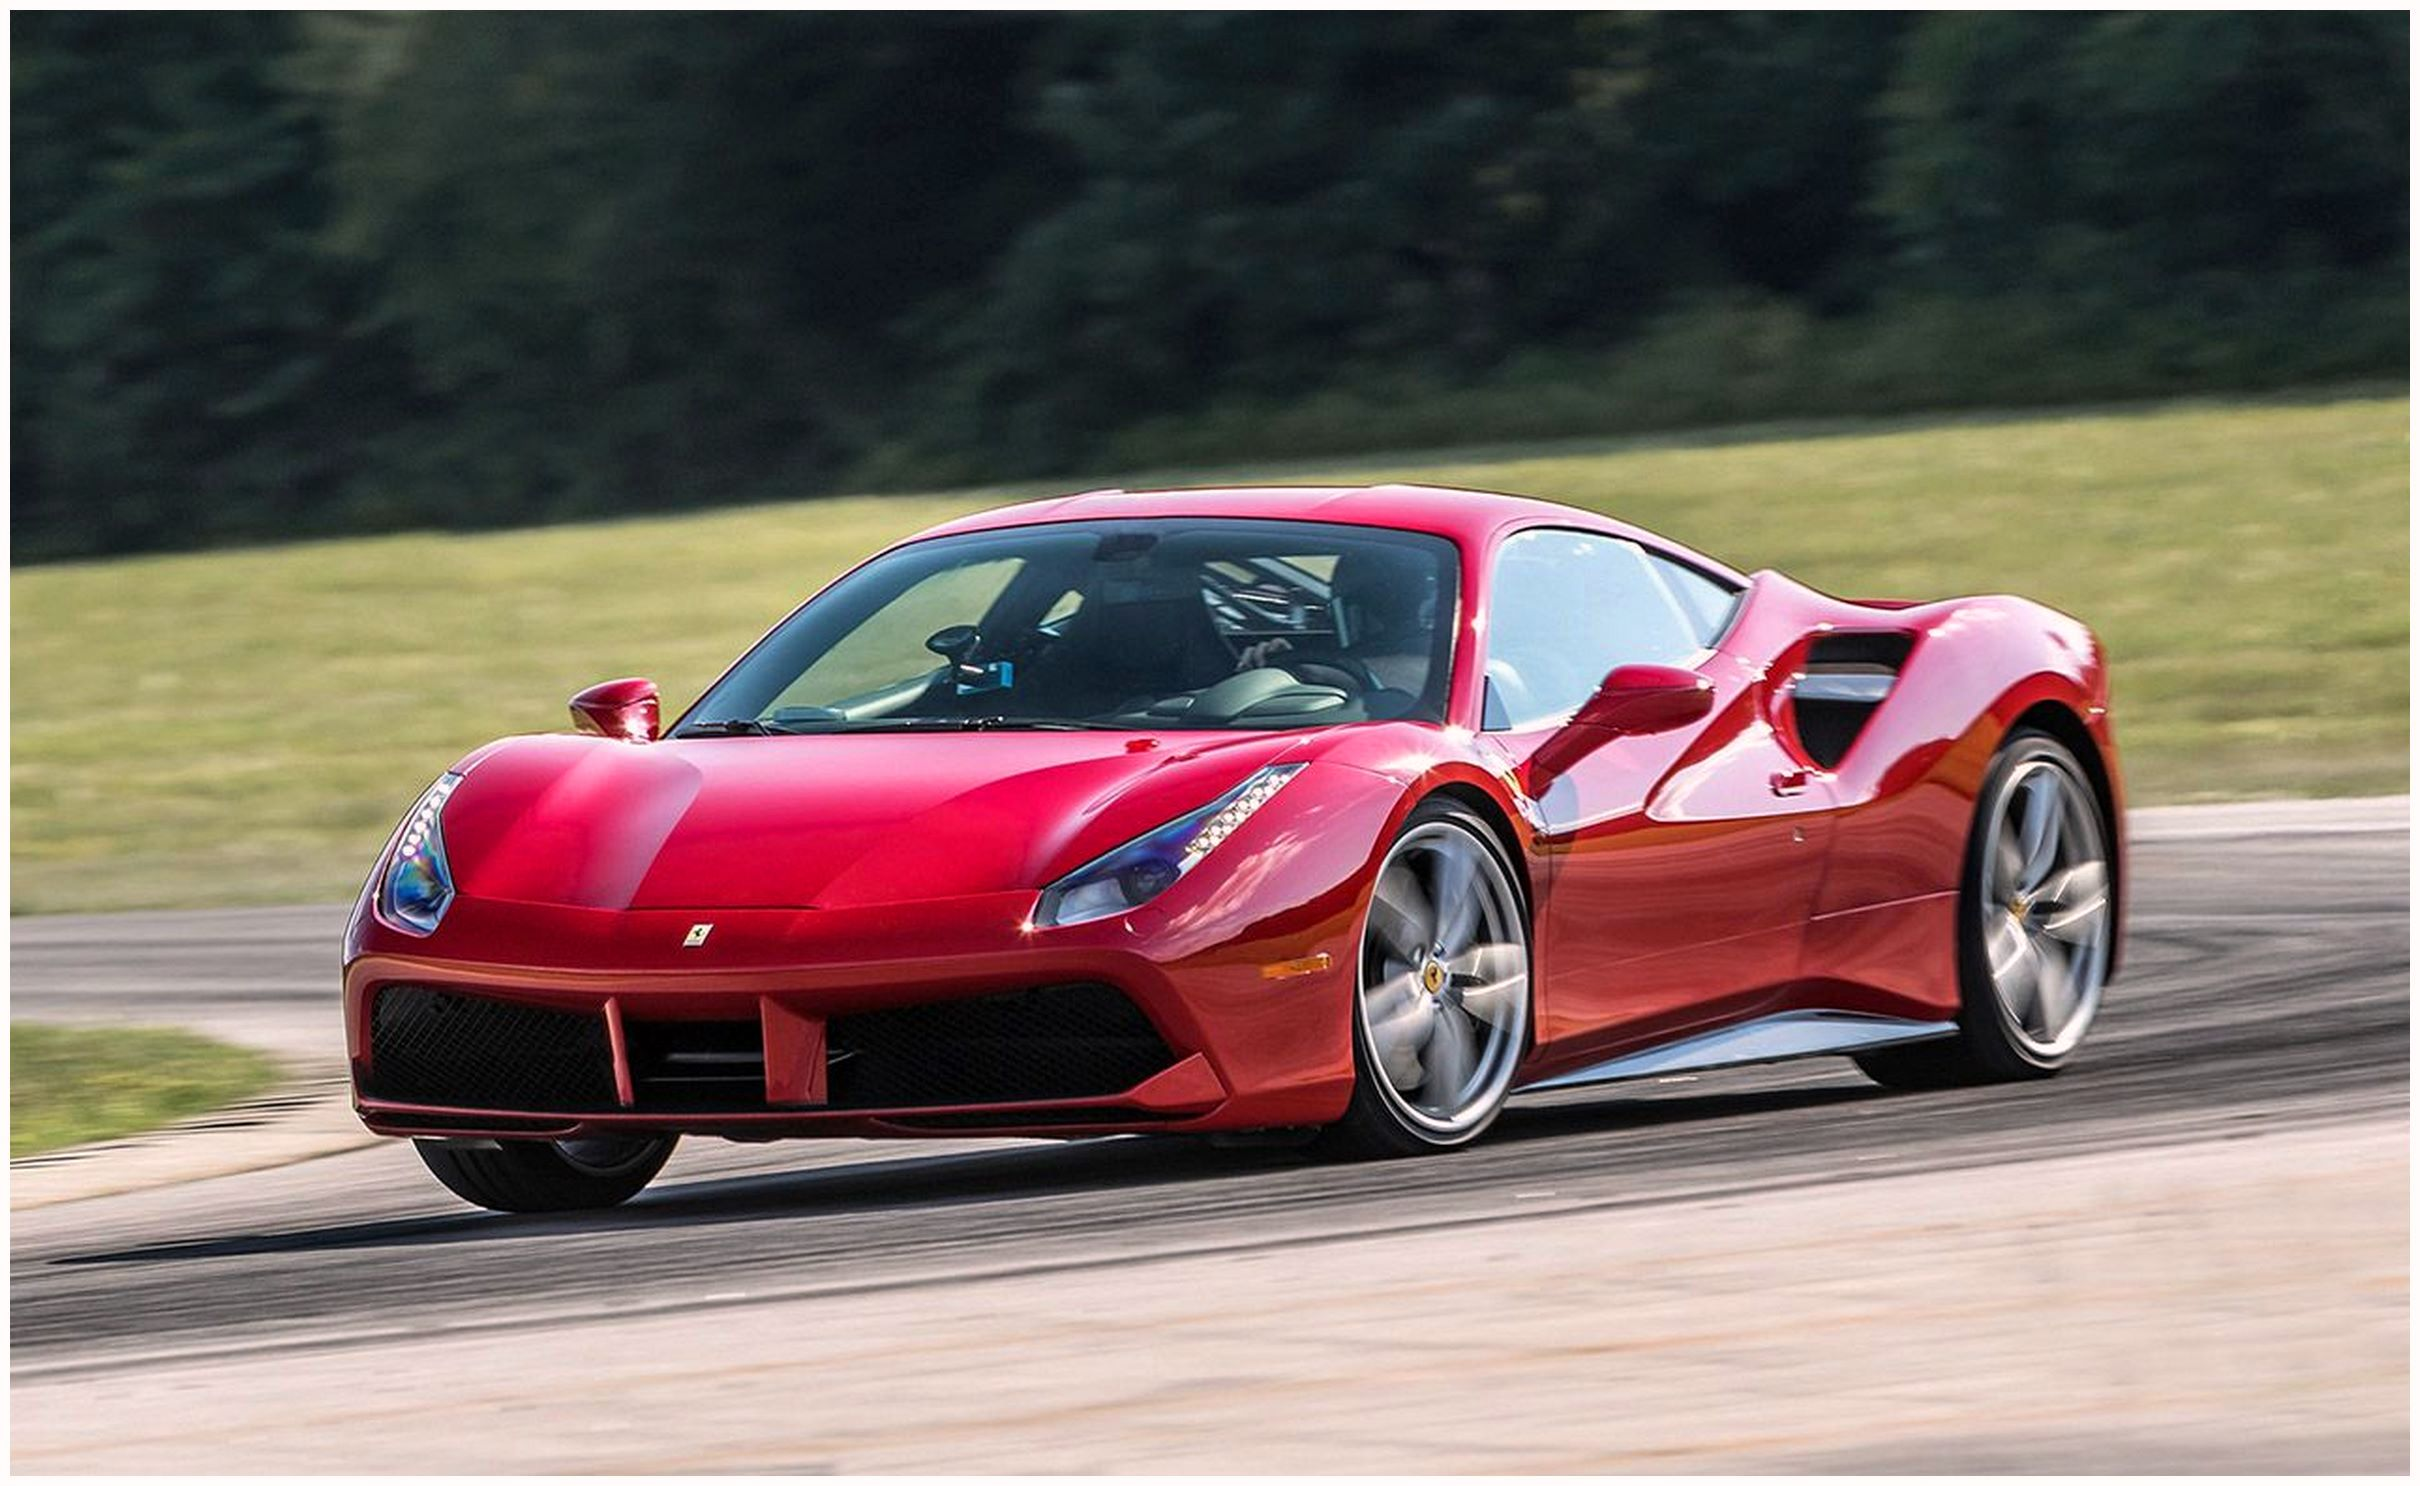 Ferrari 488GTB First Drive HD wallpapers 4k images download free